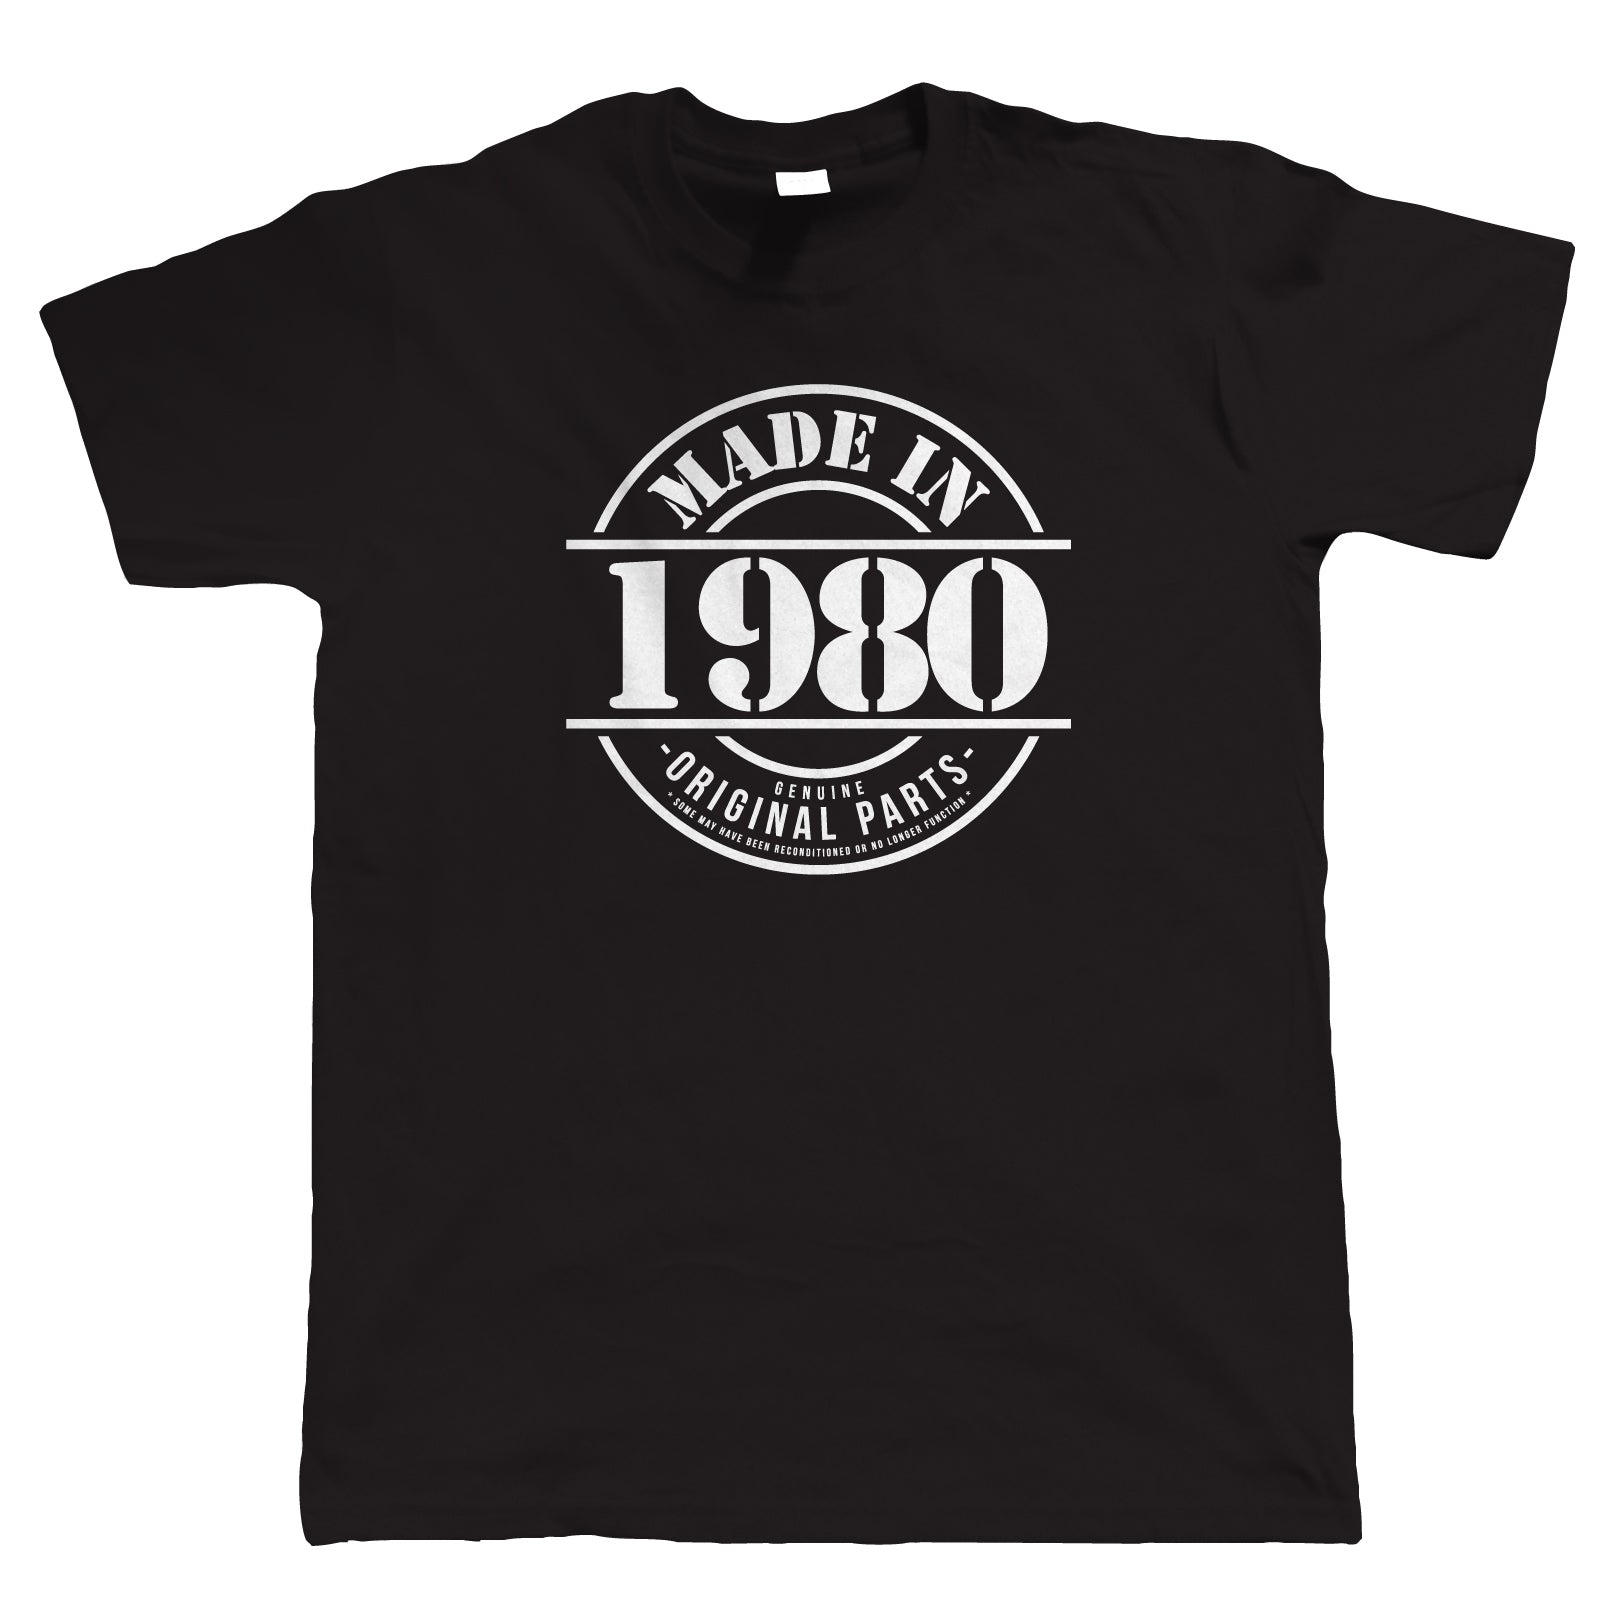 Made in 1980 Mens Funny 40th Birthday T Shirt